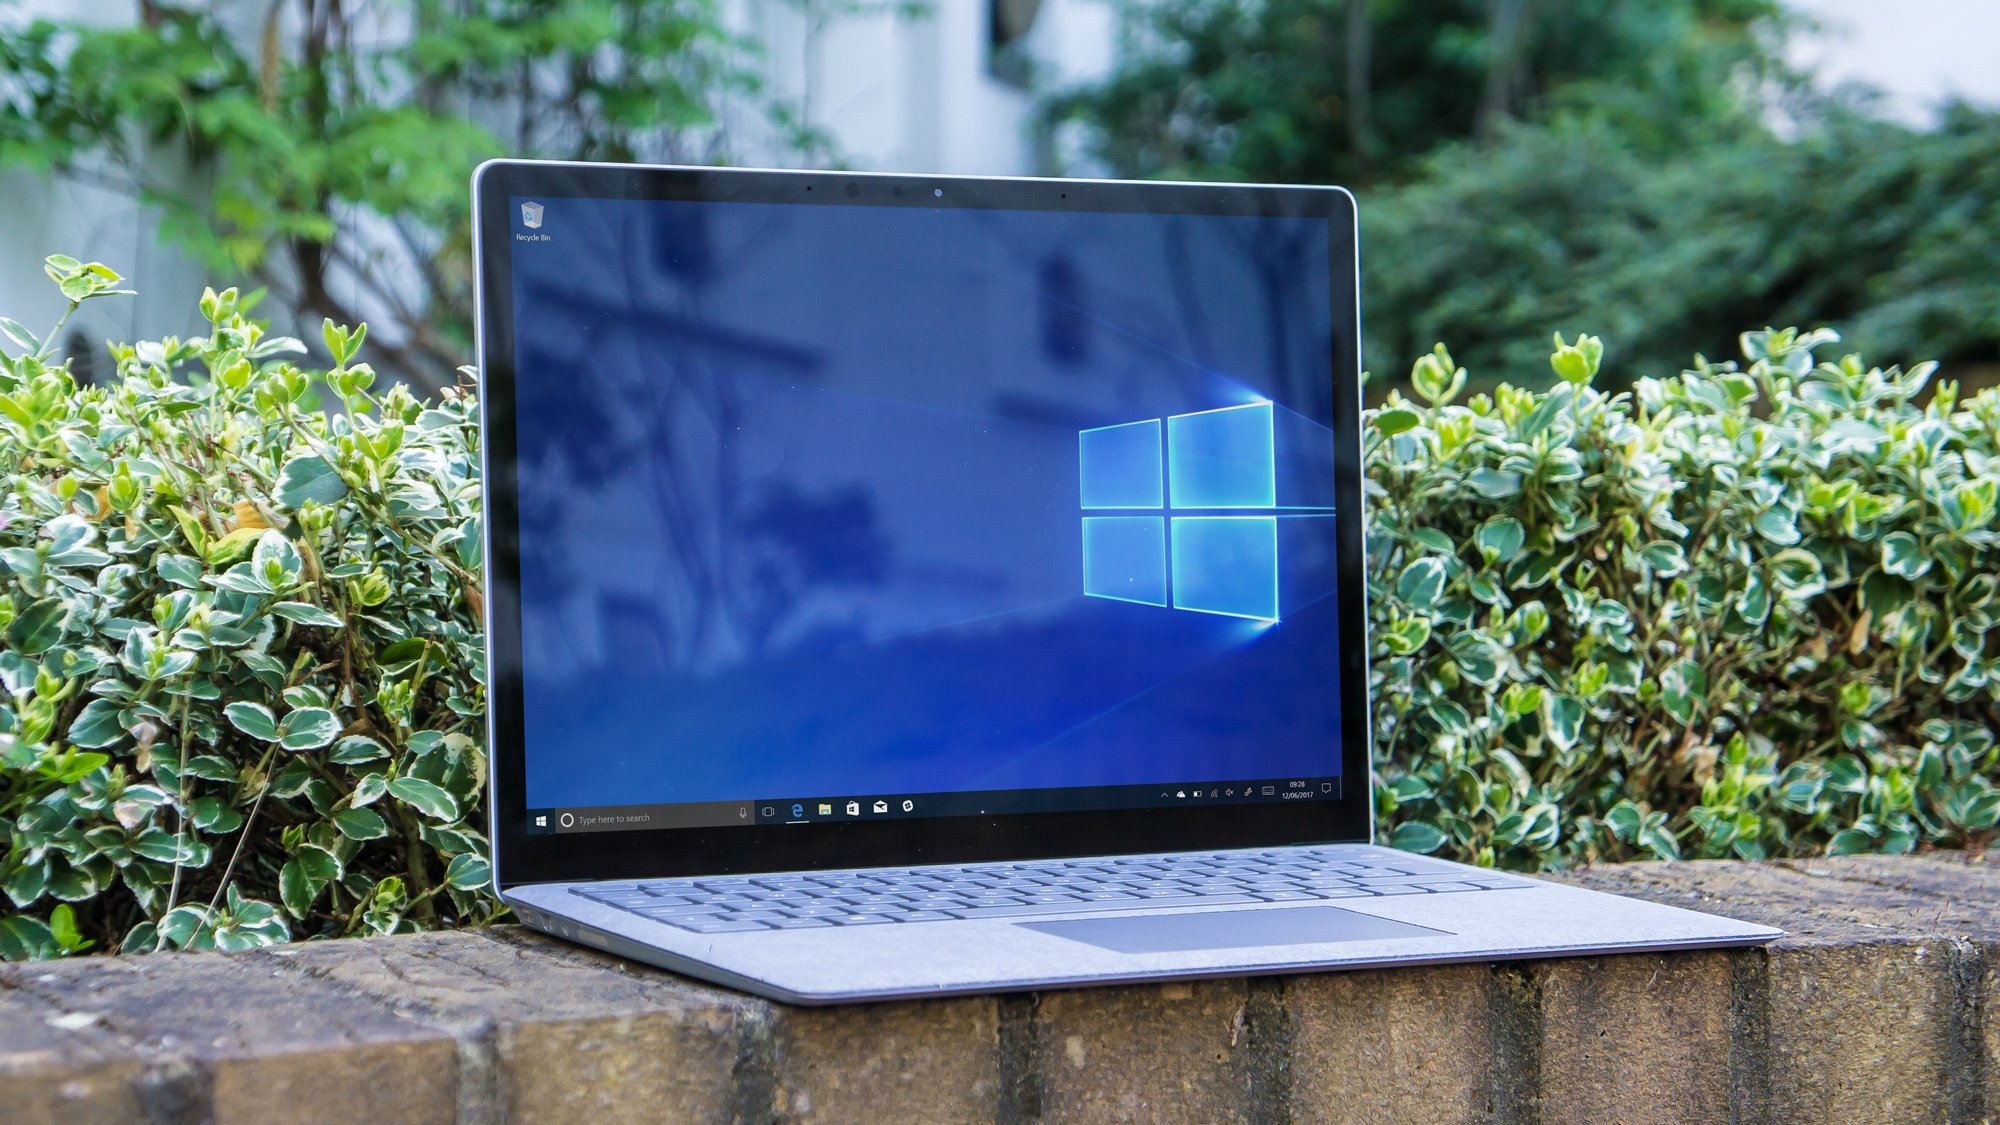 microsoft surface laptop review aims at the student offs. Black Bedroom Furniture Sets. Home Design Ideas